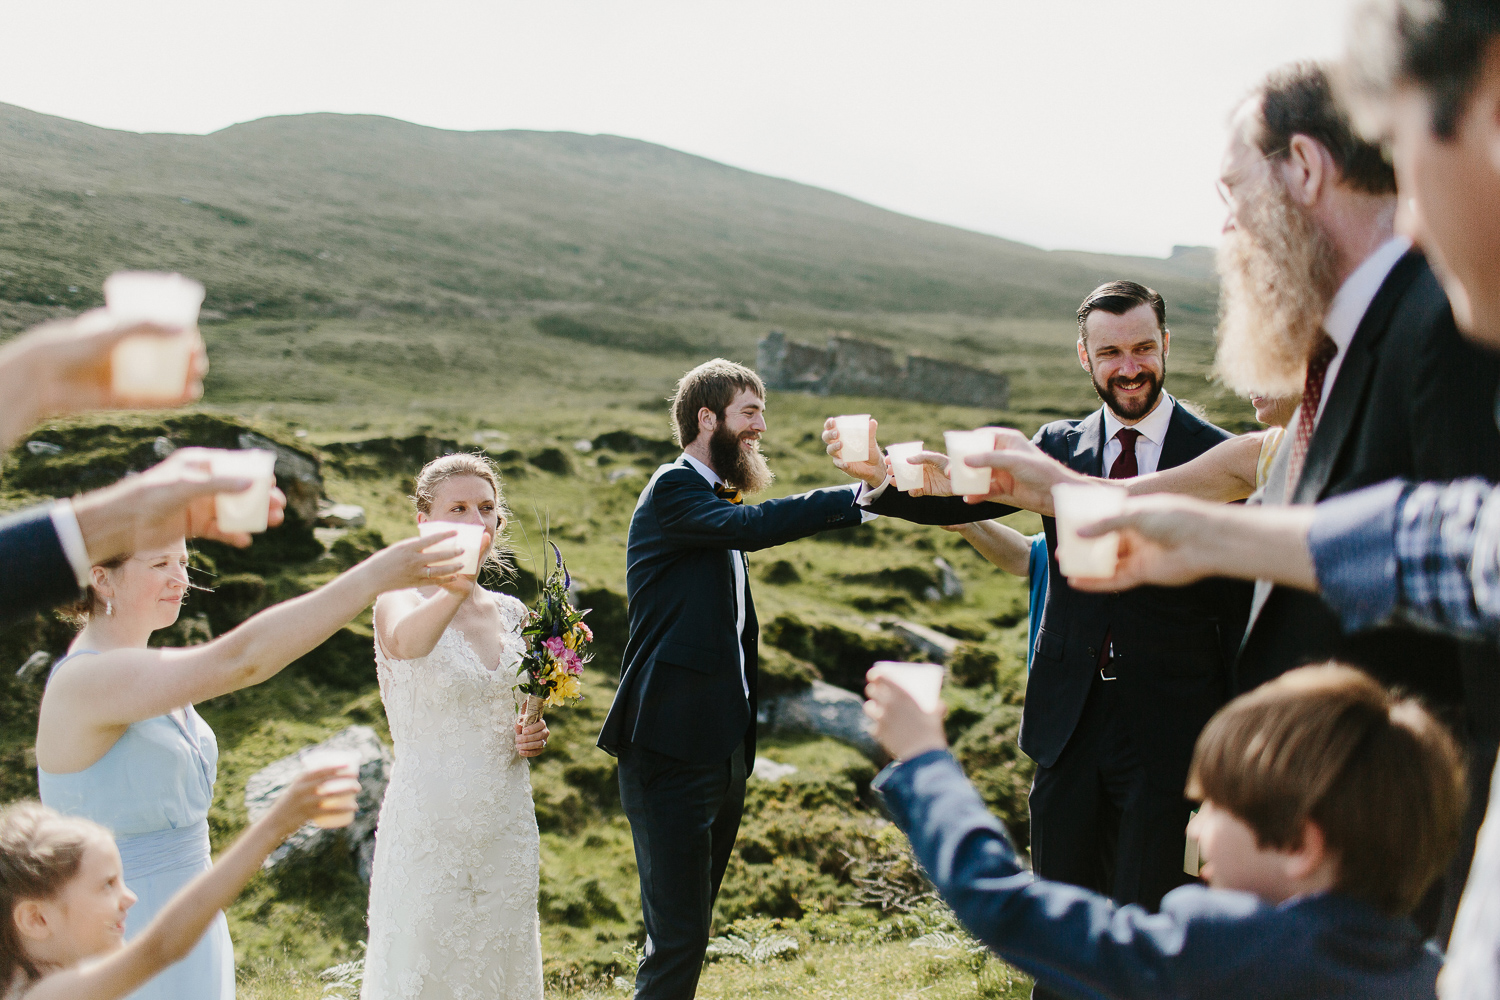 Achill-Island-Adventure-Wedding-Photographer-256.jpg